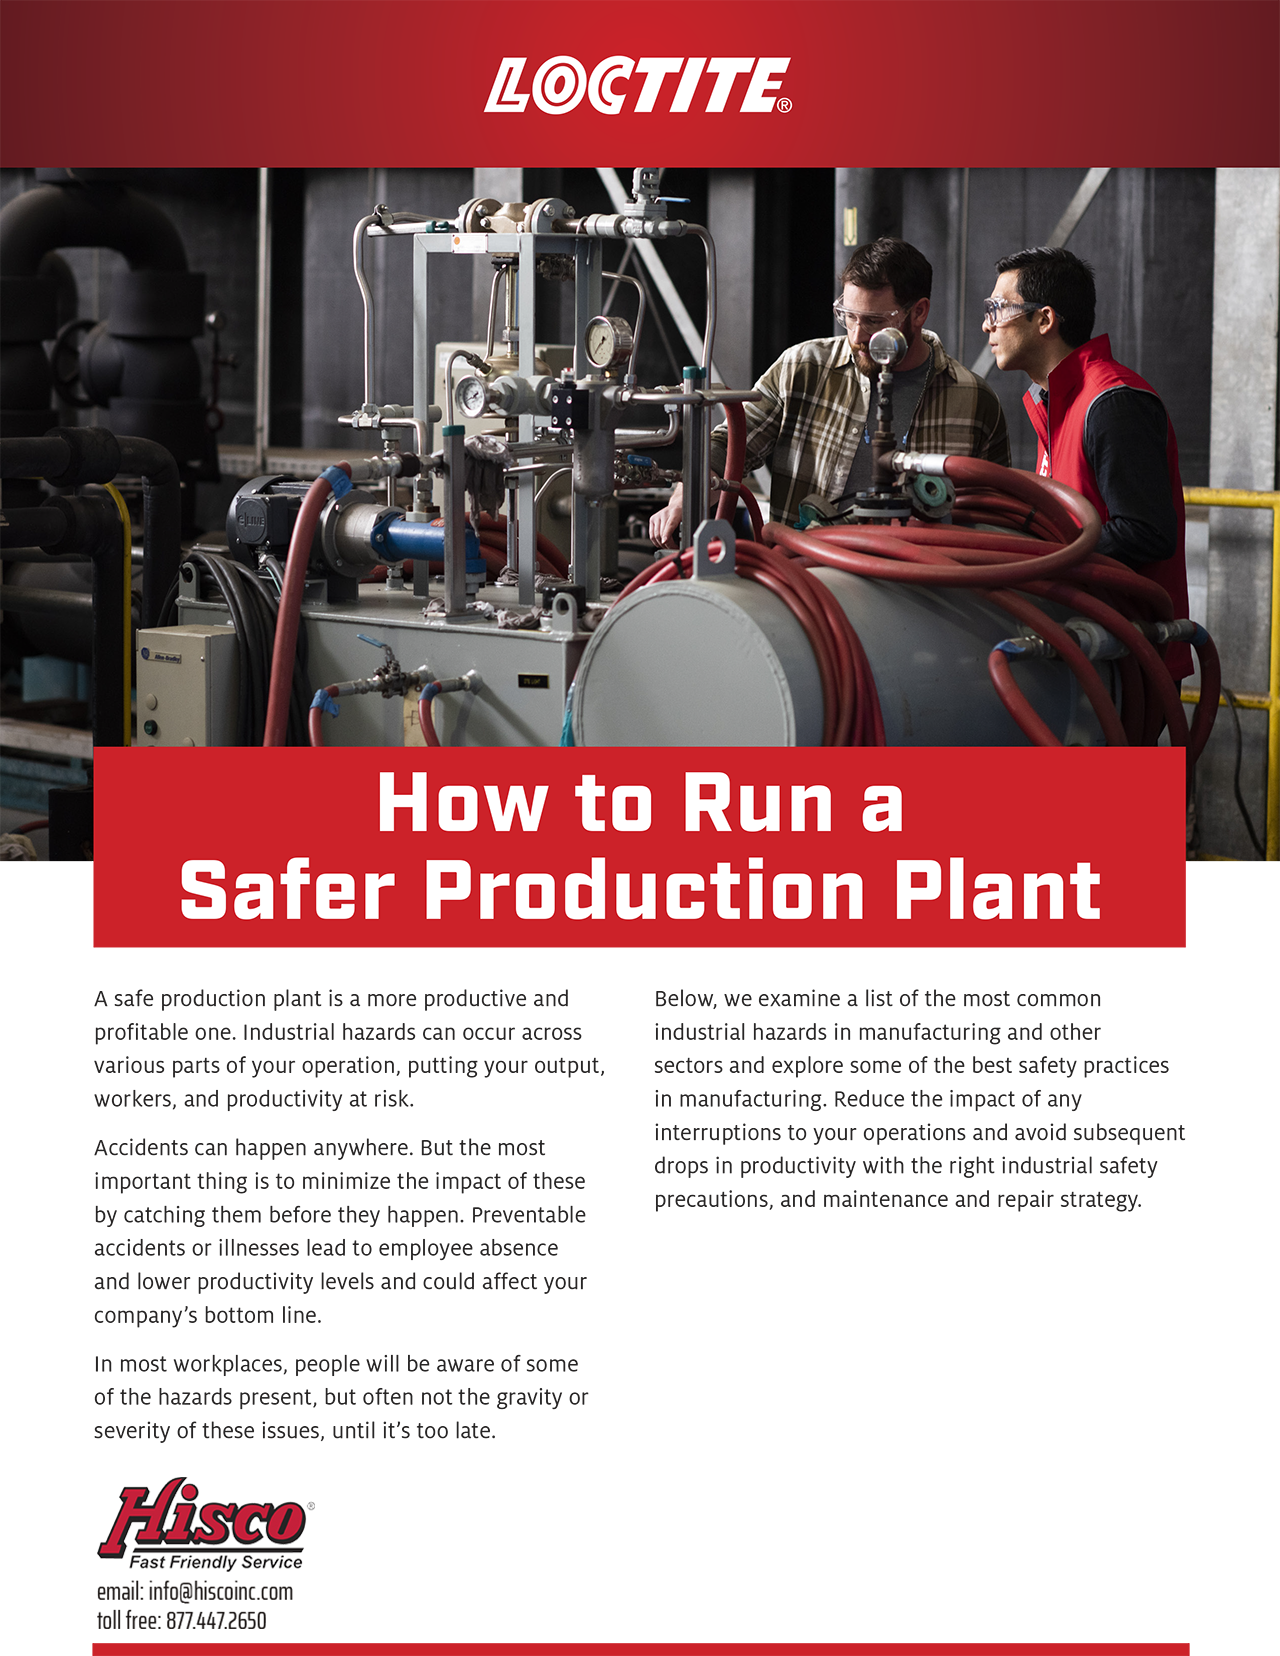 Run a Safer Production Plant